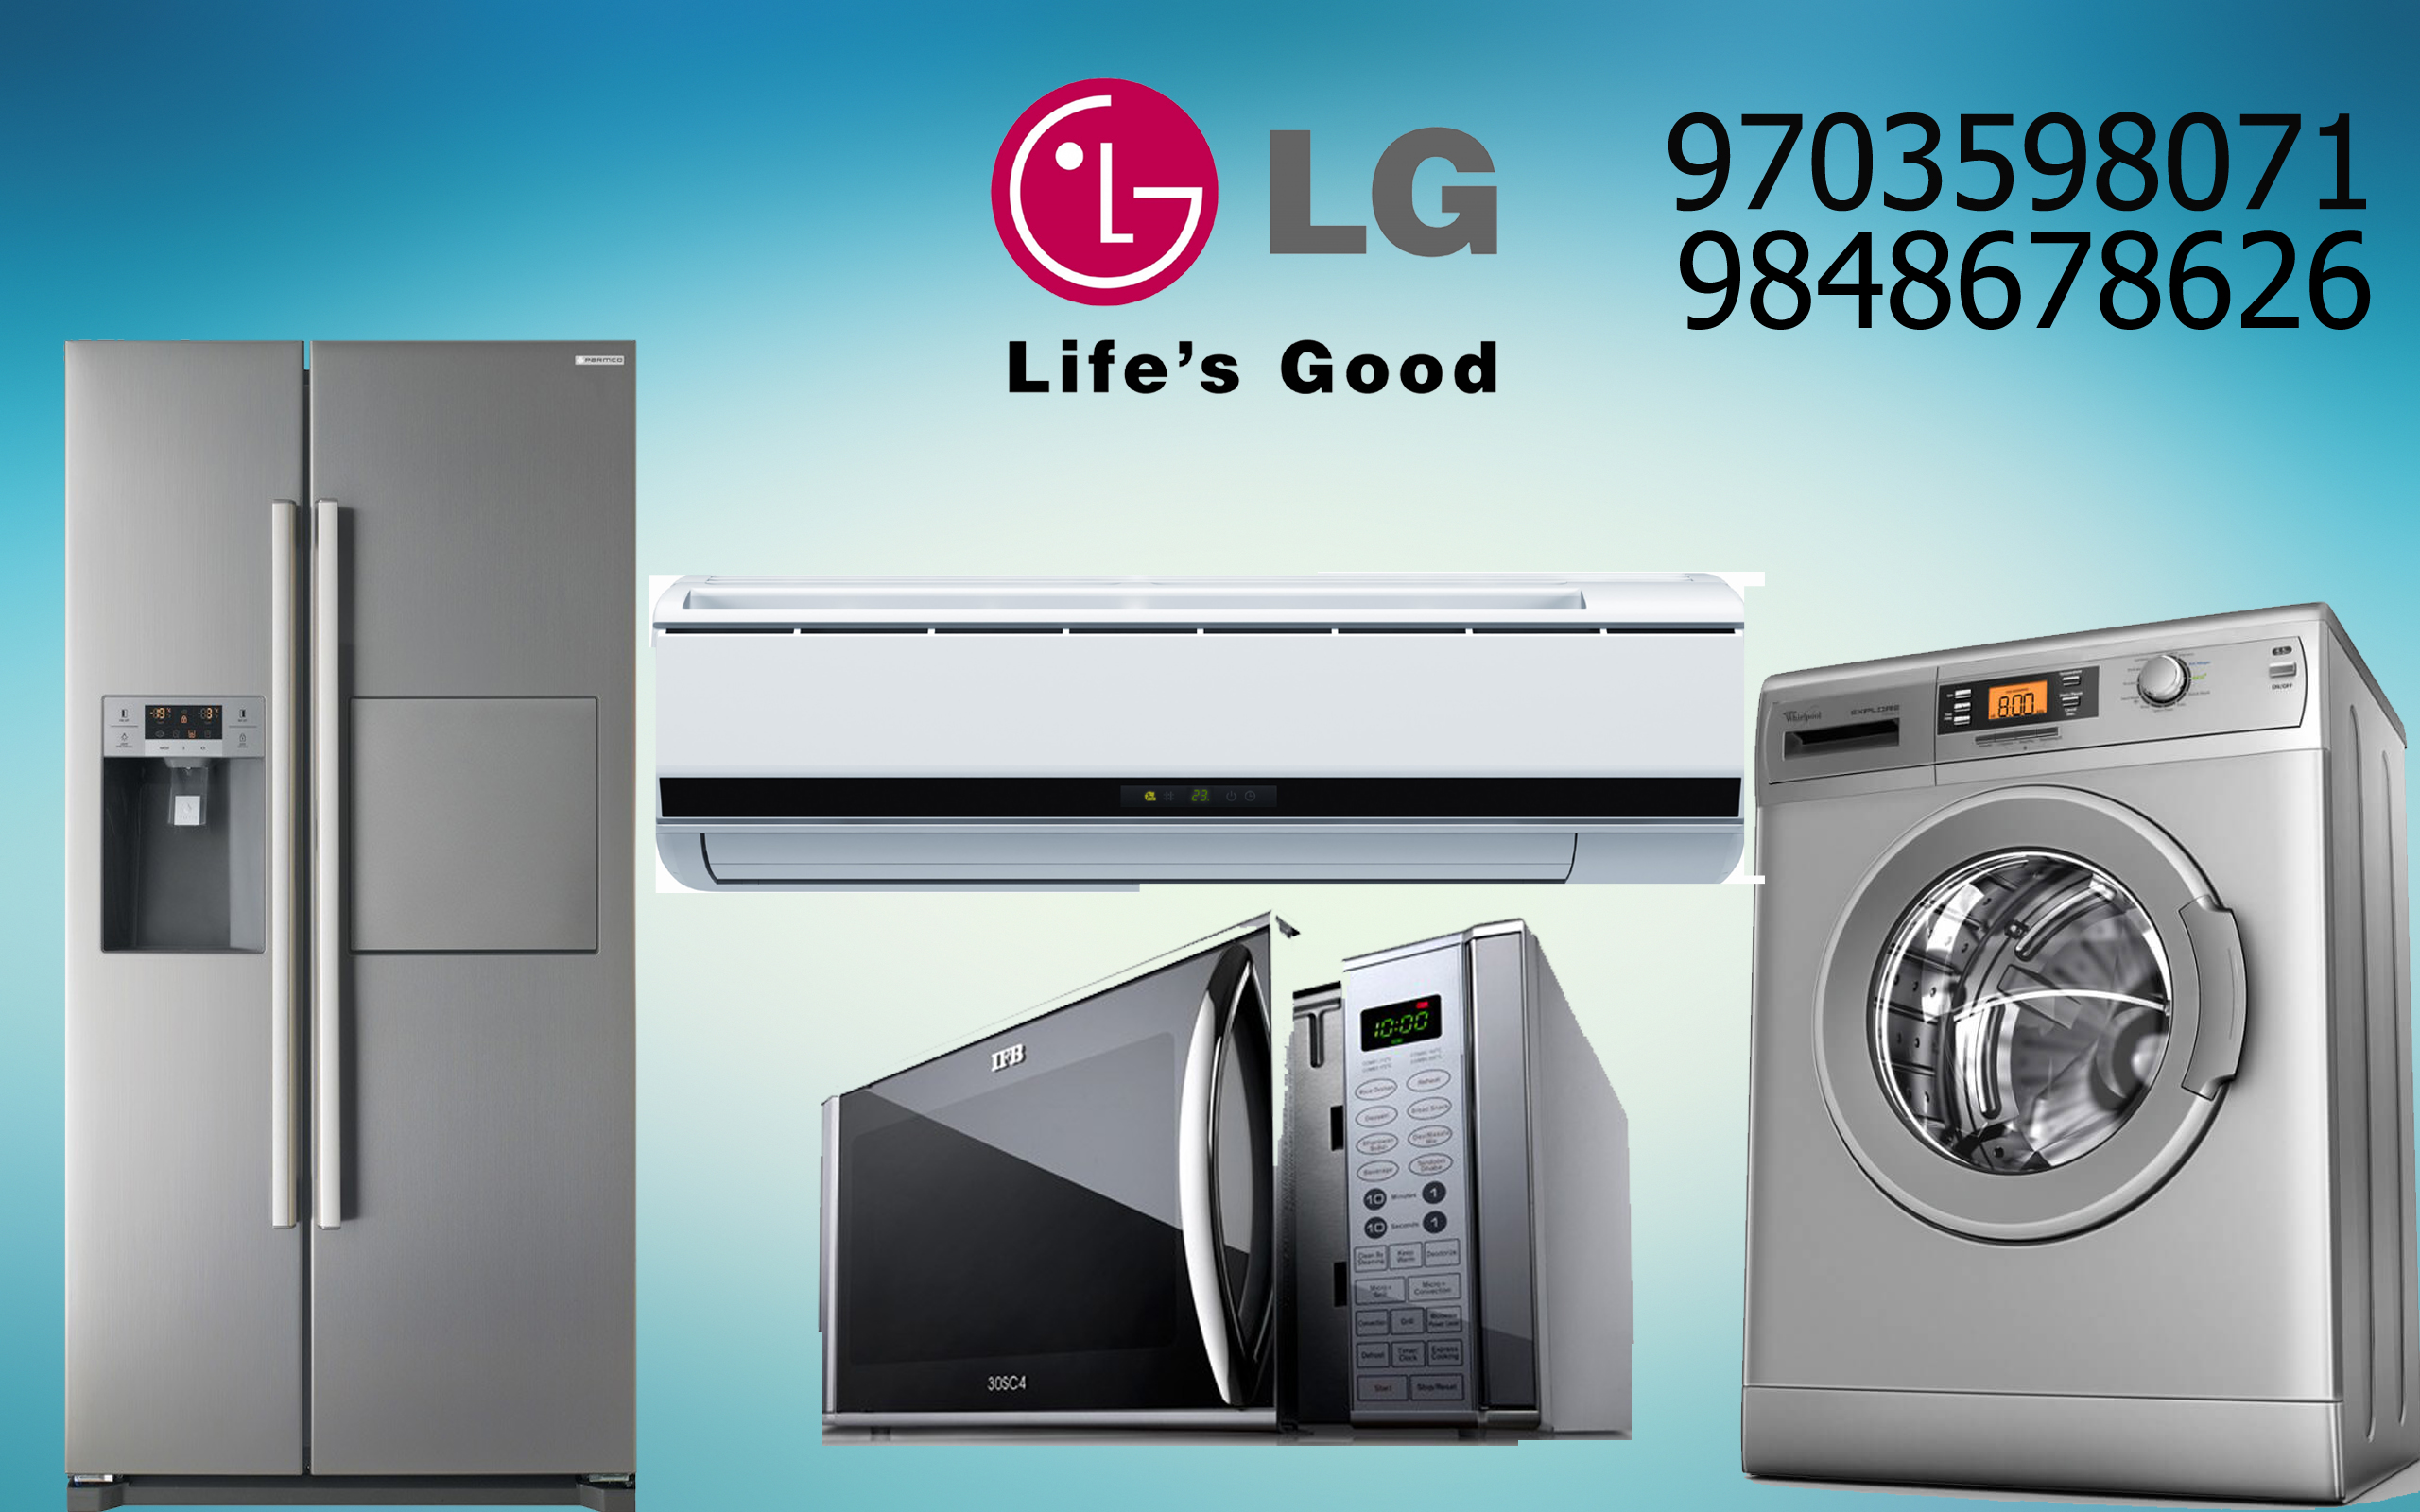 Lg Washing Machine Amp Microwave Oven Service Center Contact Us